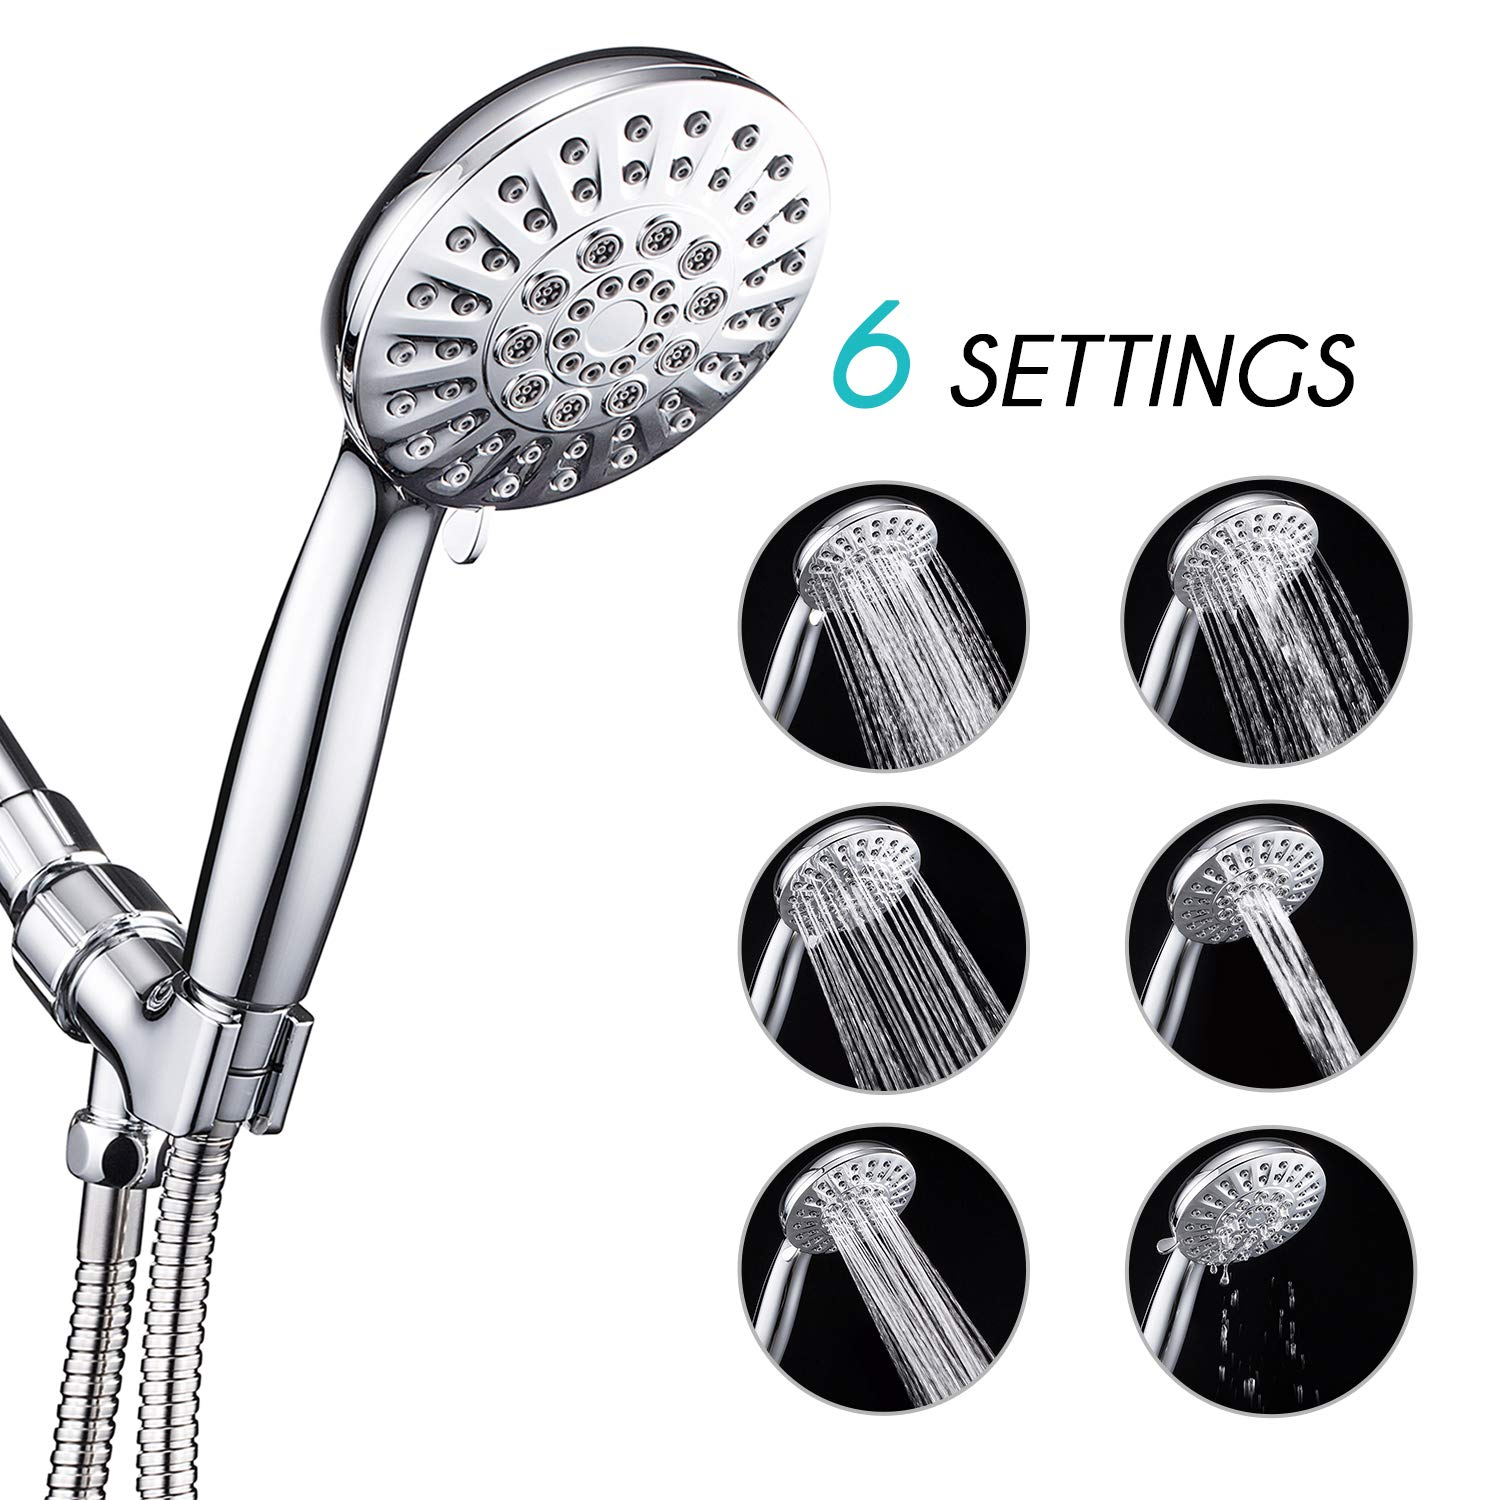 ANZA 6 Spray Settings Hand Held Shower Head with Hose, 4.3'' Water Saving Massage Rain High Pressure Handheld Shower Head, Angle-Adjustable Bracket, 5 Ft Stainless Steel Hose, Chrome